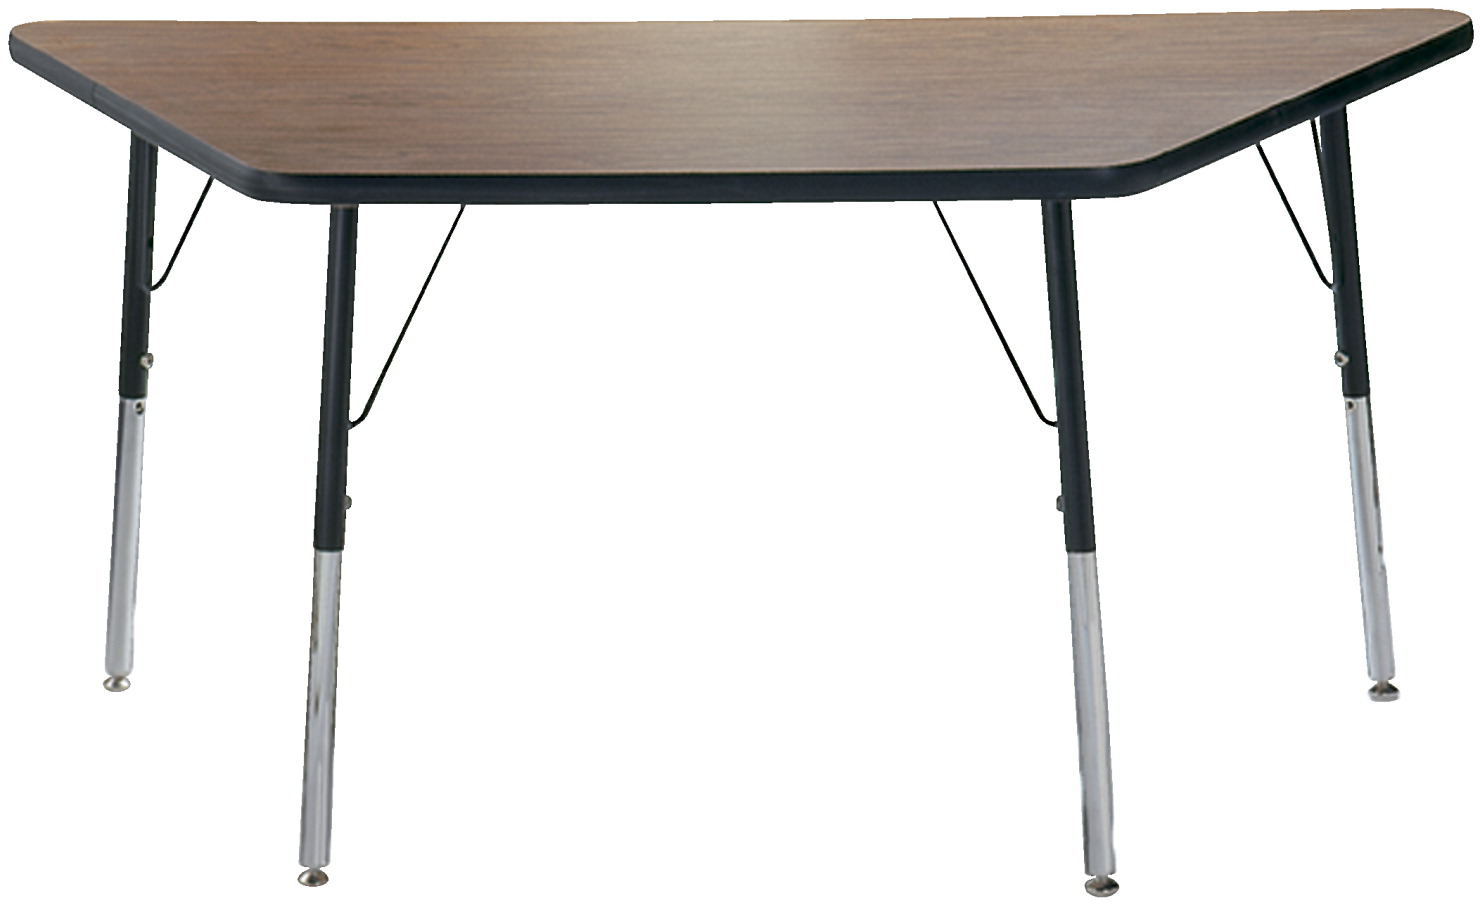 Classroom select activity table classroom direct for Trapazoid table